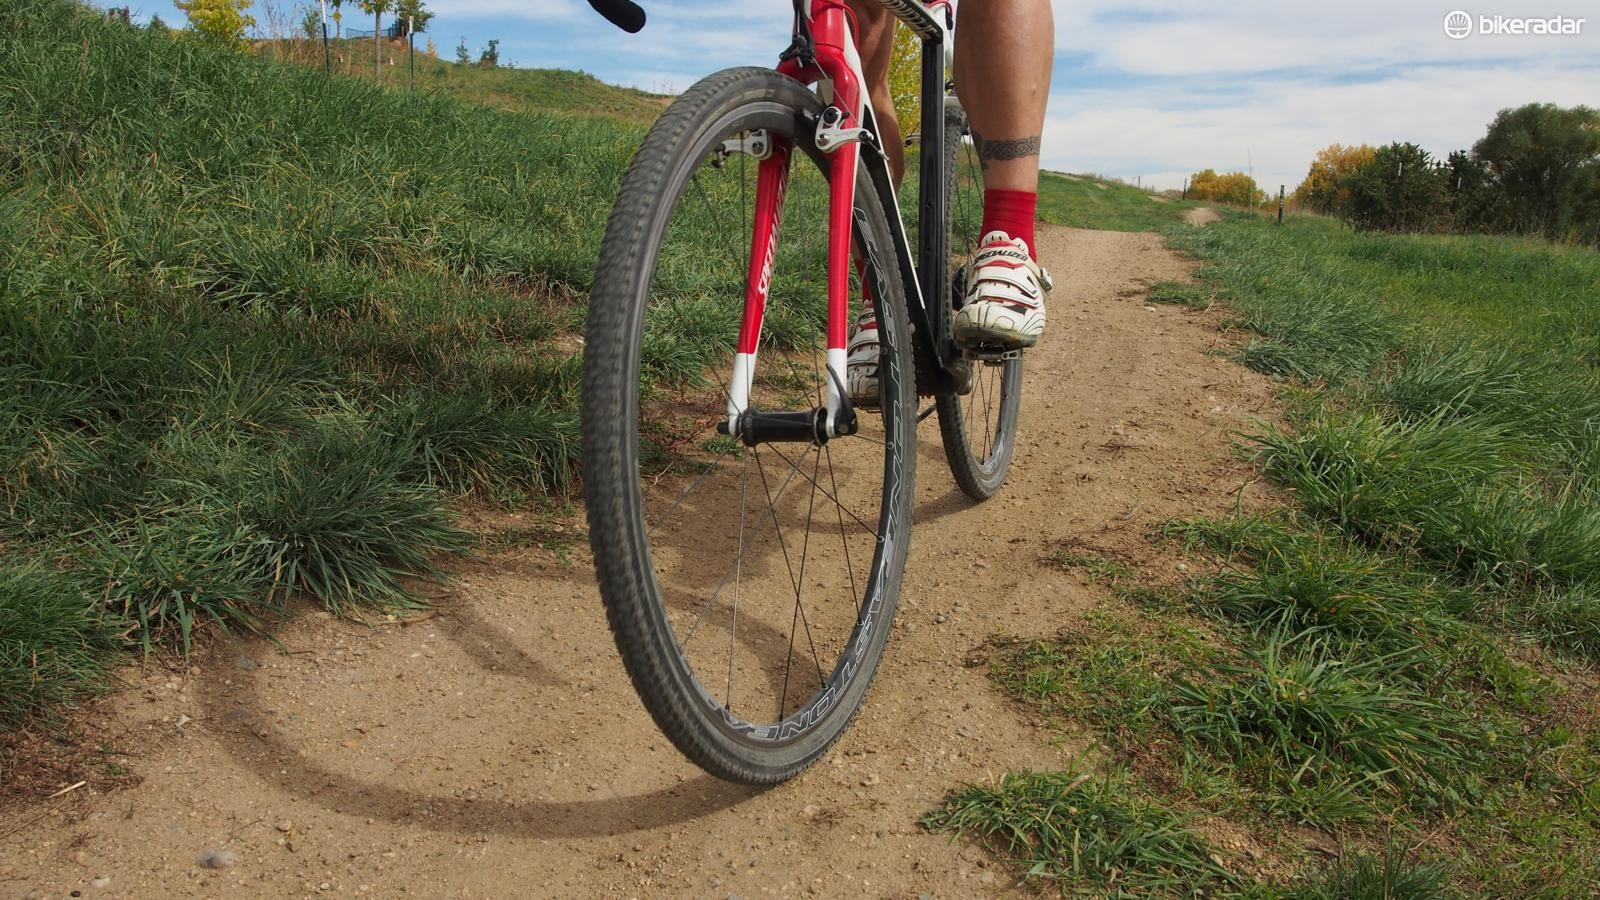 Hutchinson's Piranha 2 CX tubeless tire is a great option for dry, fast courses